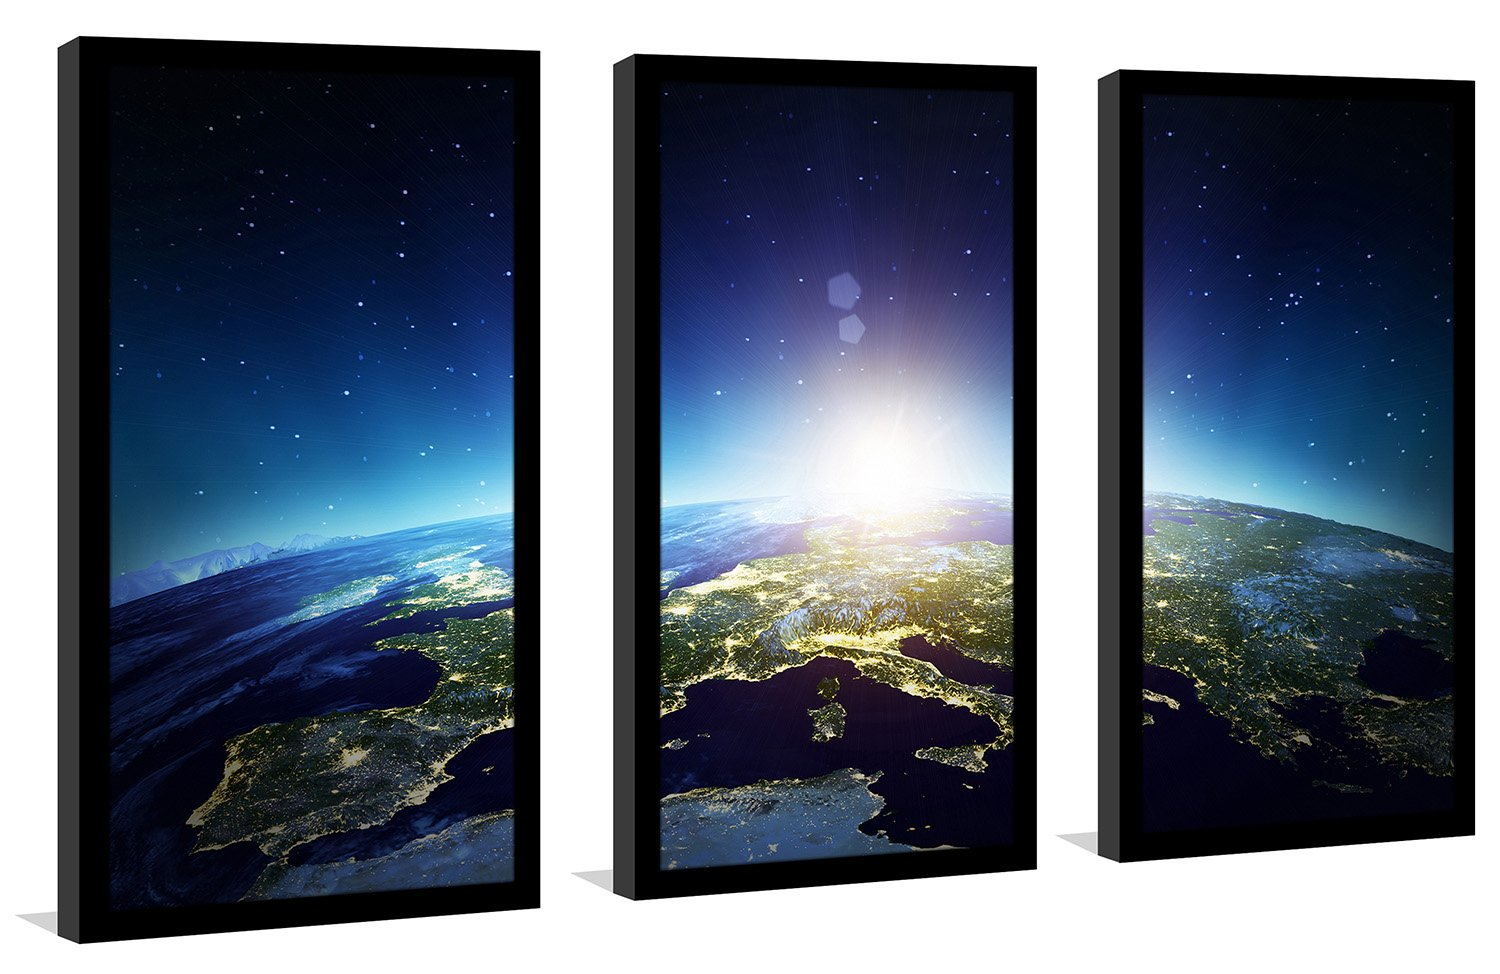 Picture Perfect InternationalEurope in Space Framed Plexiglass Wall Art Set of 3